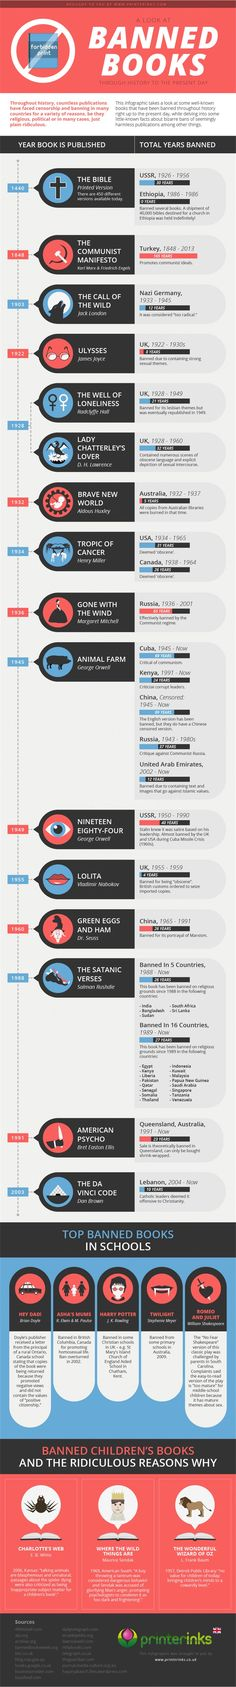 """""""Banned Books Timeline Shows the Where, When, and the (Often Ridiculous) Why of Literary Censorship — INFOGRAPHIC"""""""